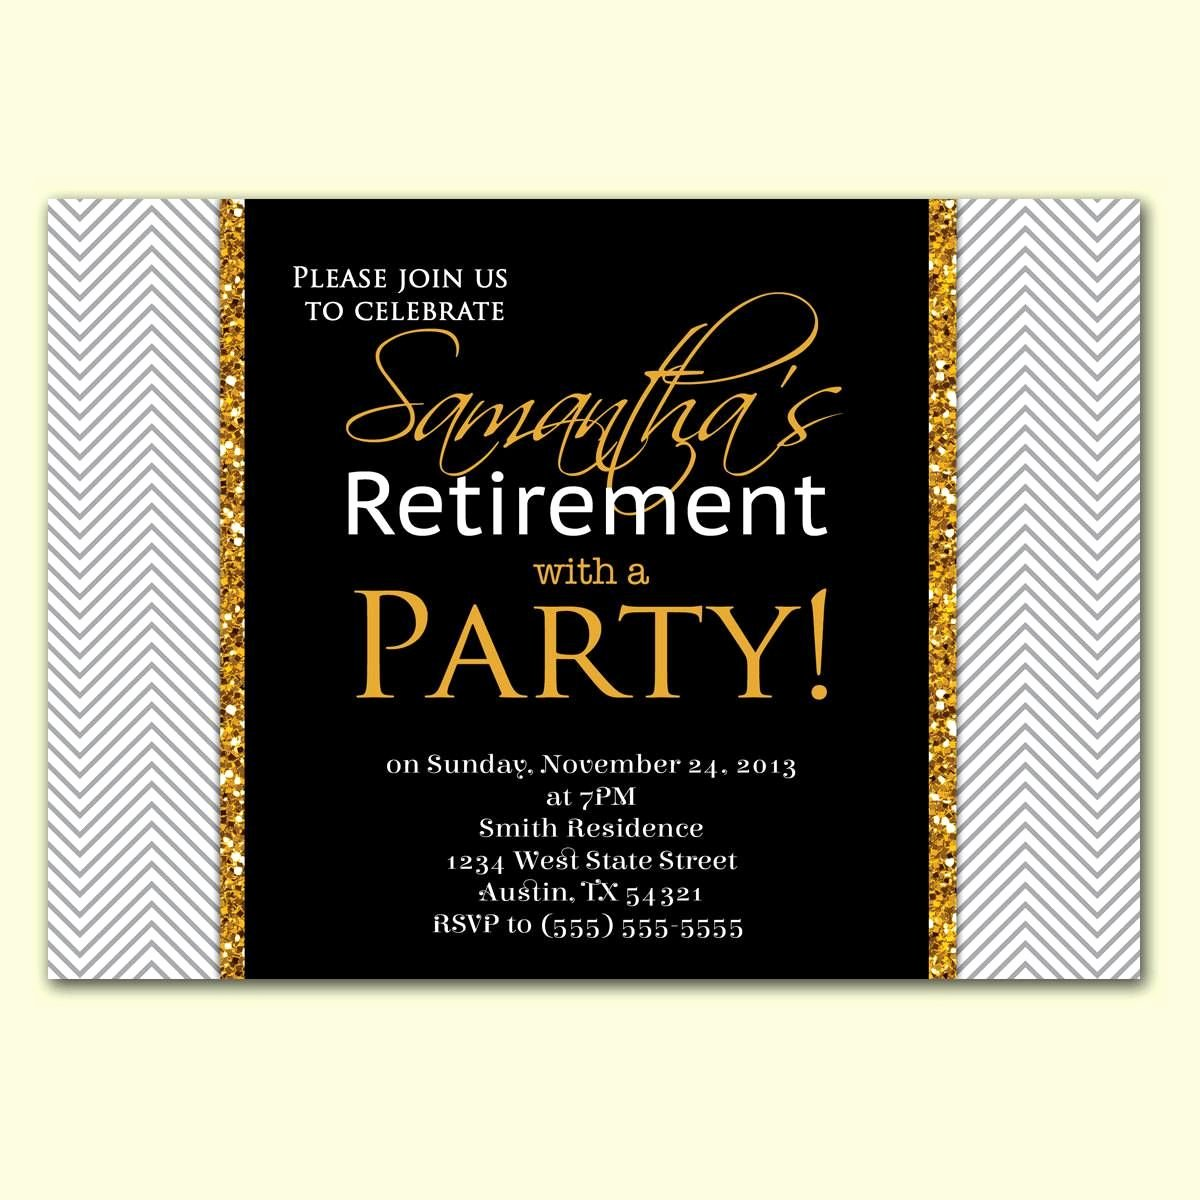 Retirement Party Invitations Templates New Retirement Party Invitation Wording In Hindi